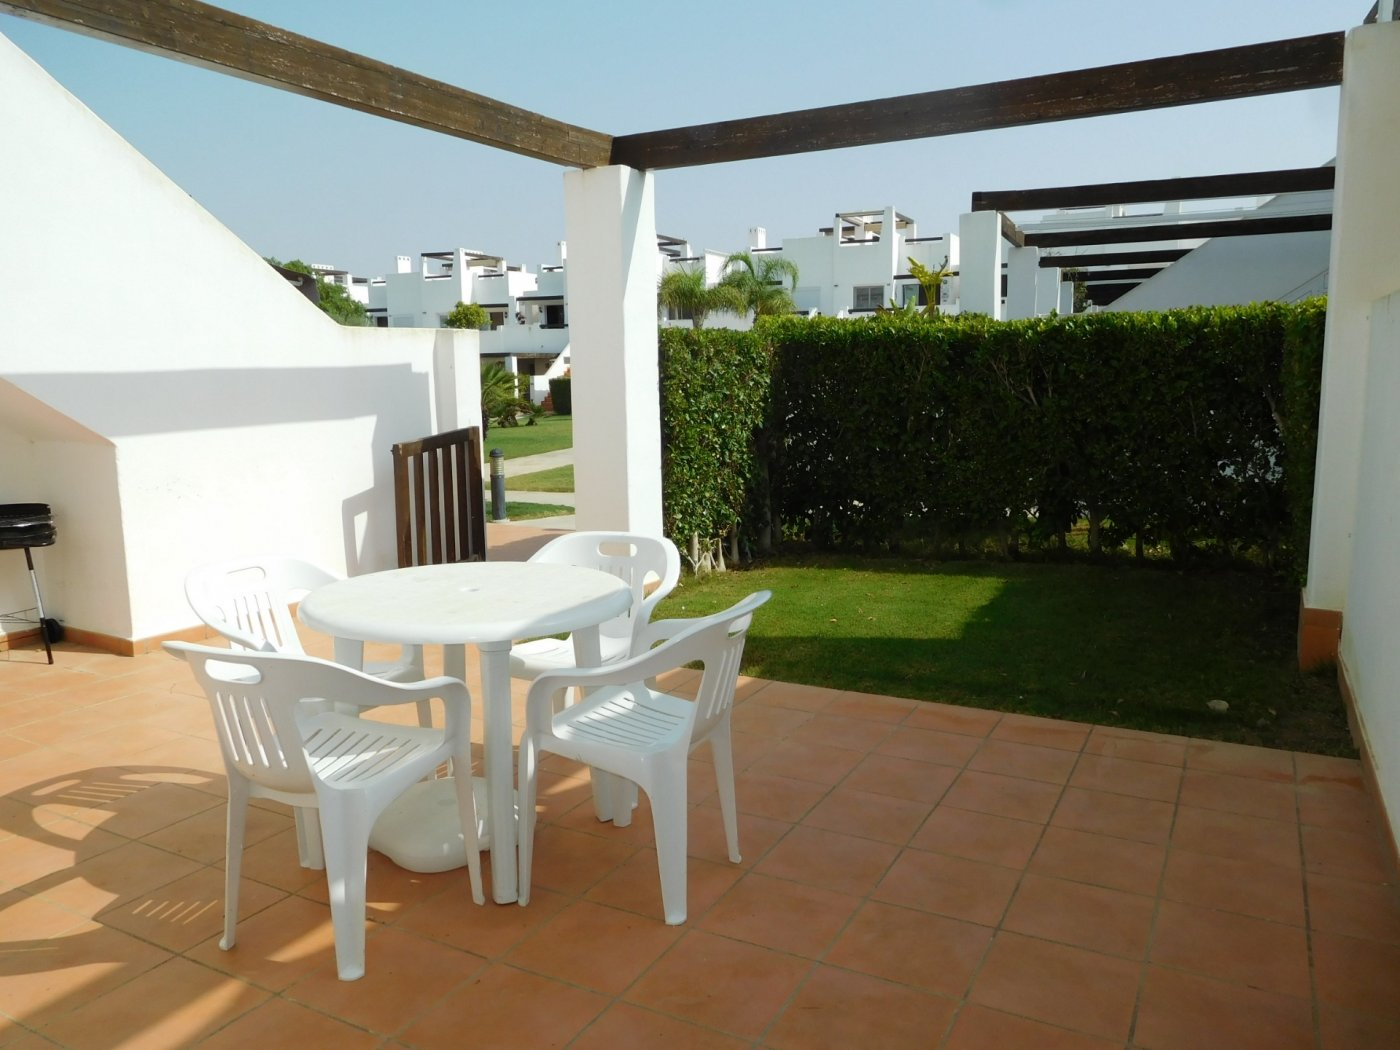 Apartment ref 3265-02944 for rent in Condado De Alhama Spain - Quality Homes Costa Cálida